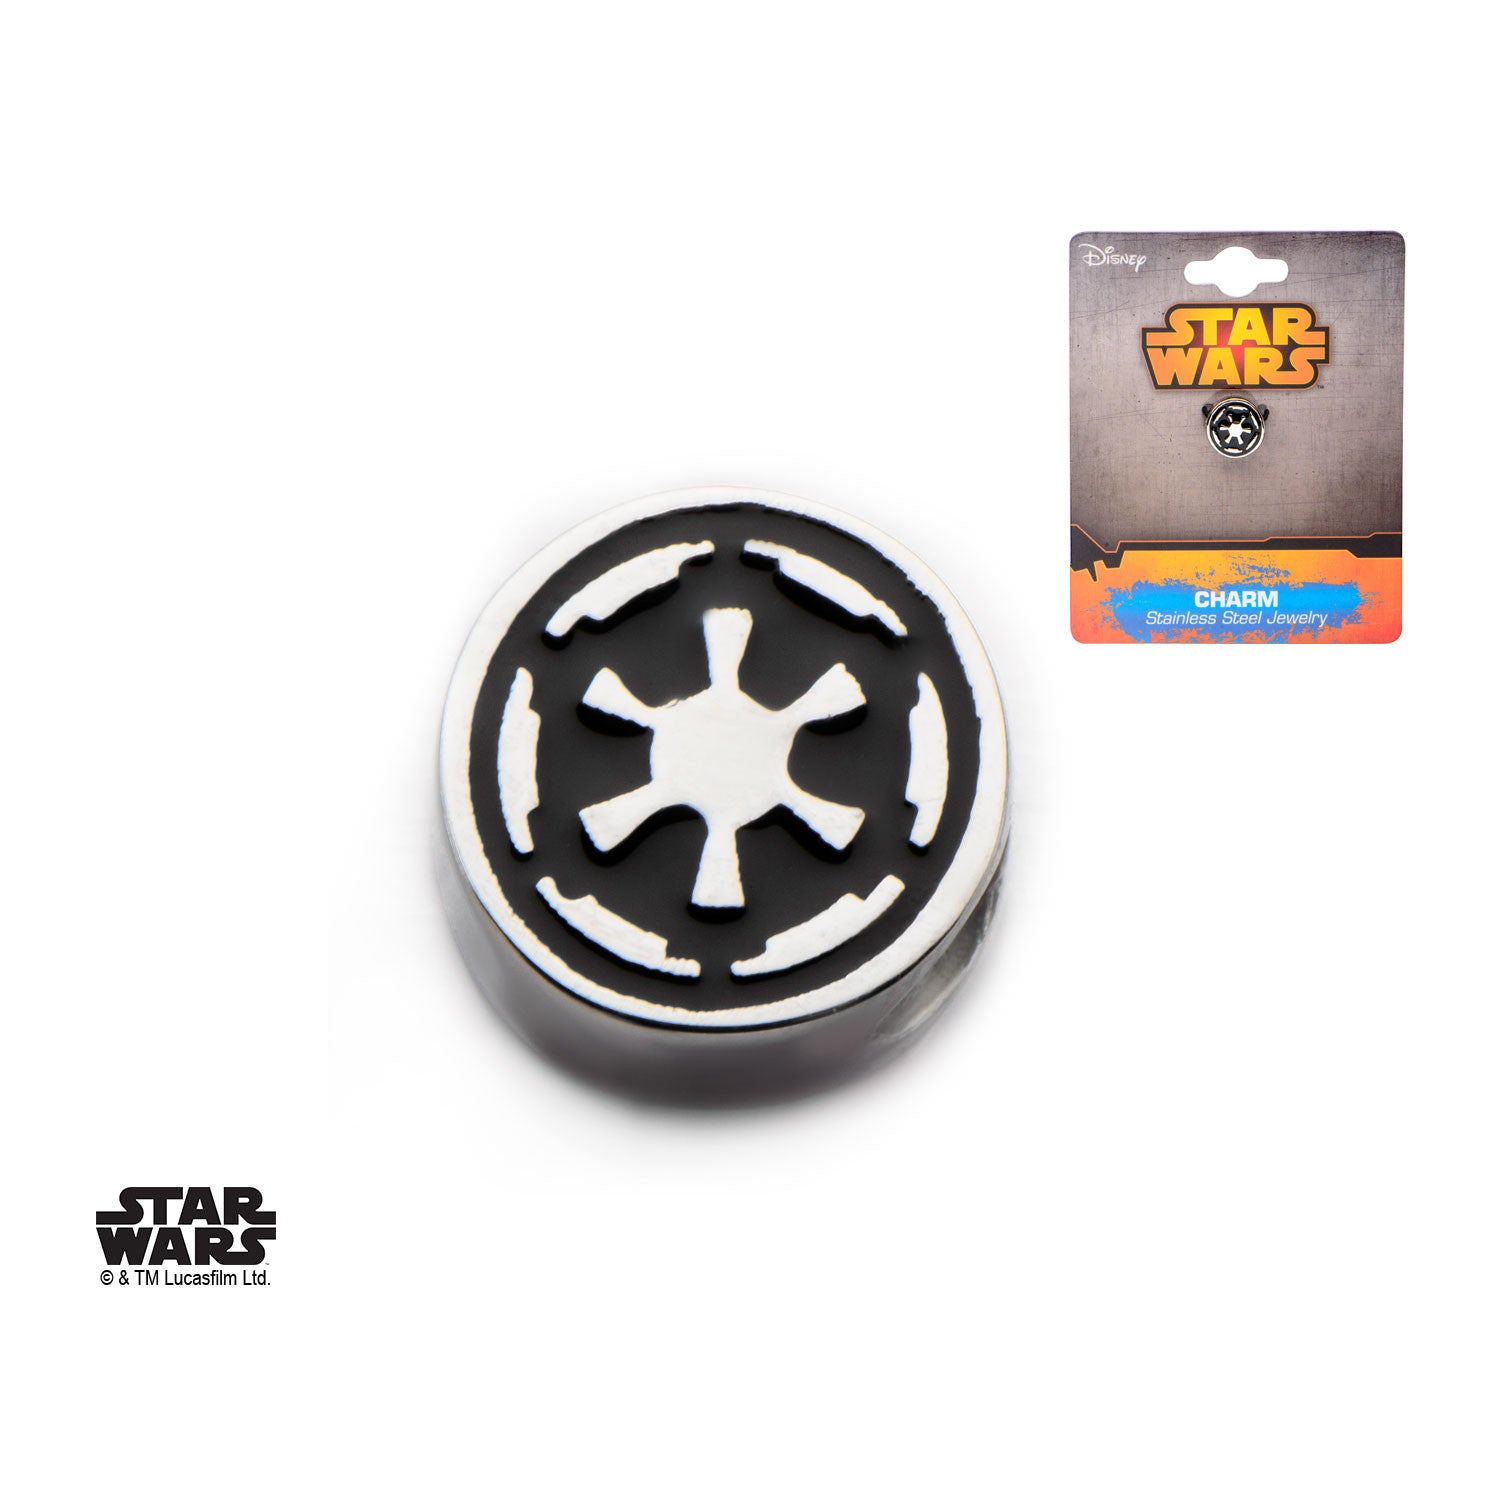 Star Wars Galactic Empire Symbol Bead Charm 316 Stainless Steel